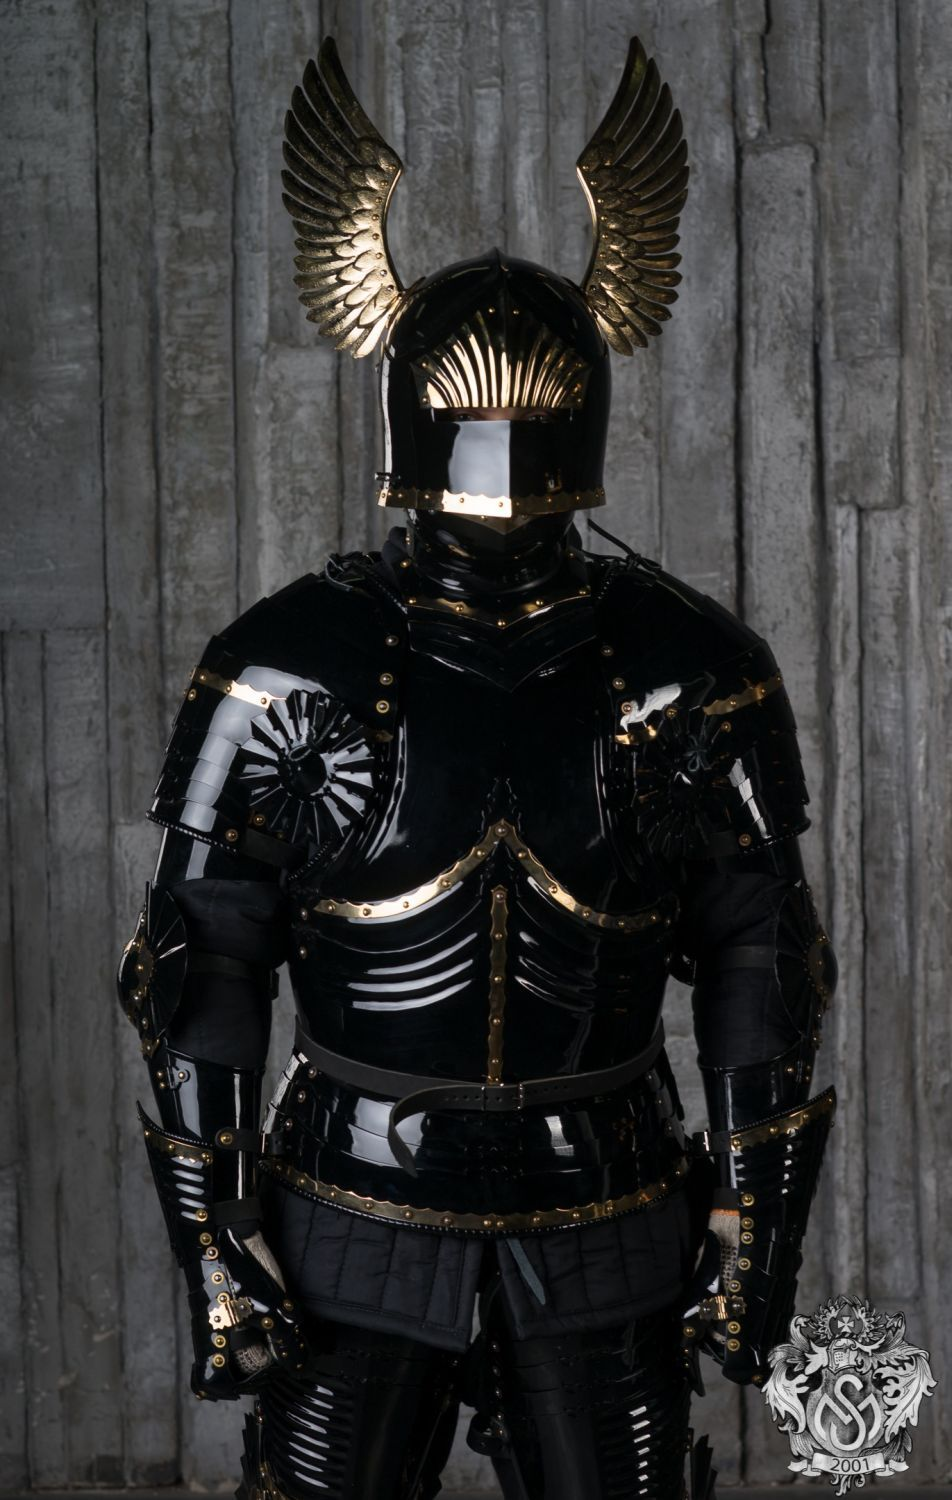 blued-gothic-full-plate-armor-14.jpg (952×1500)